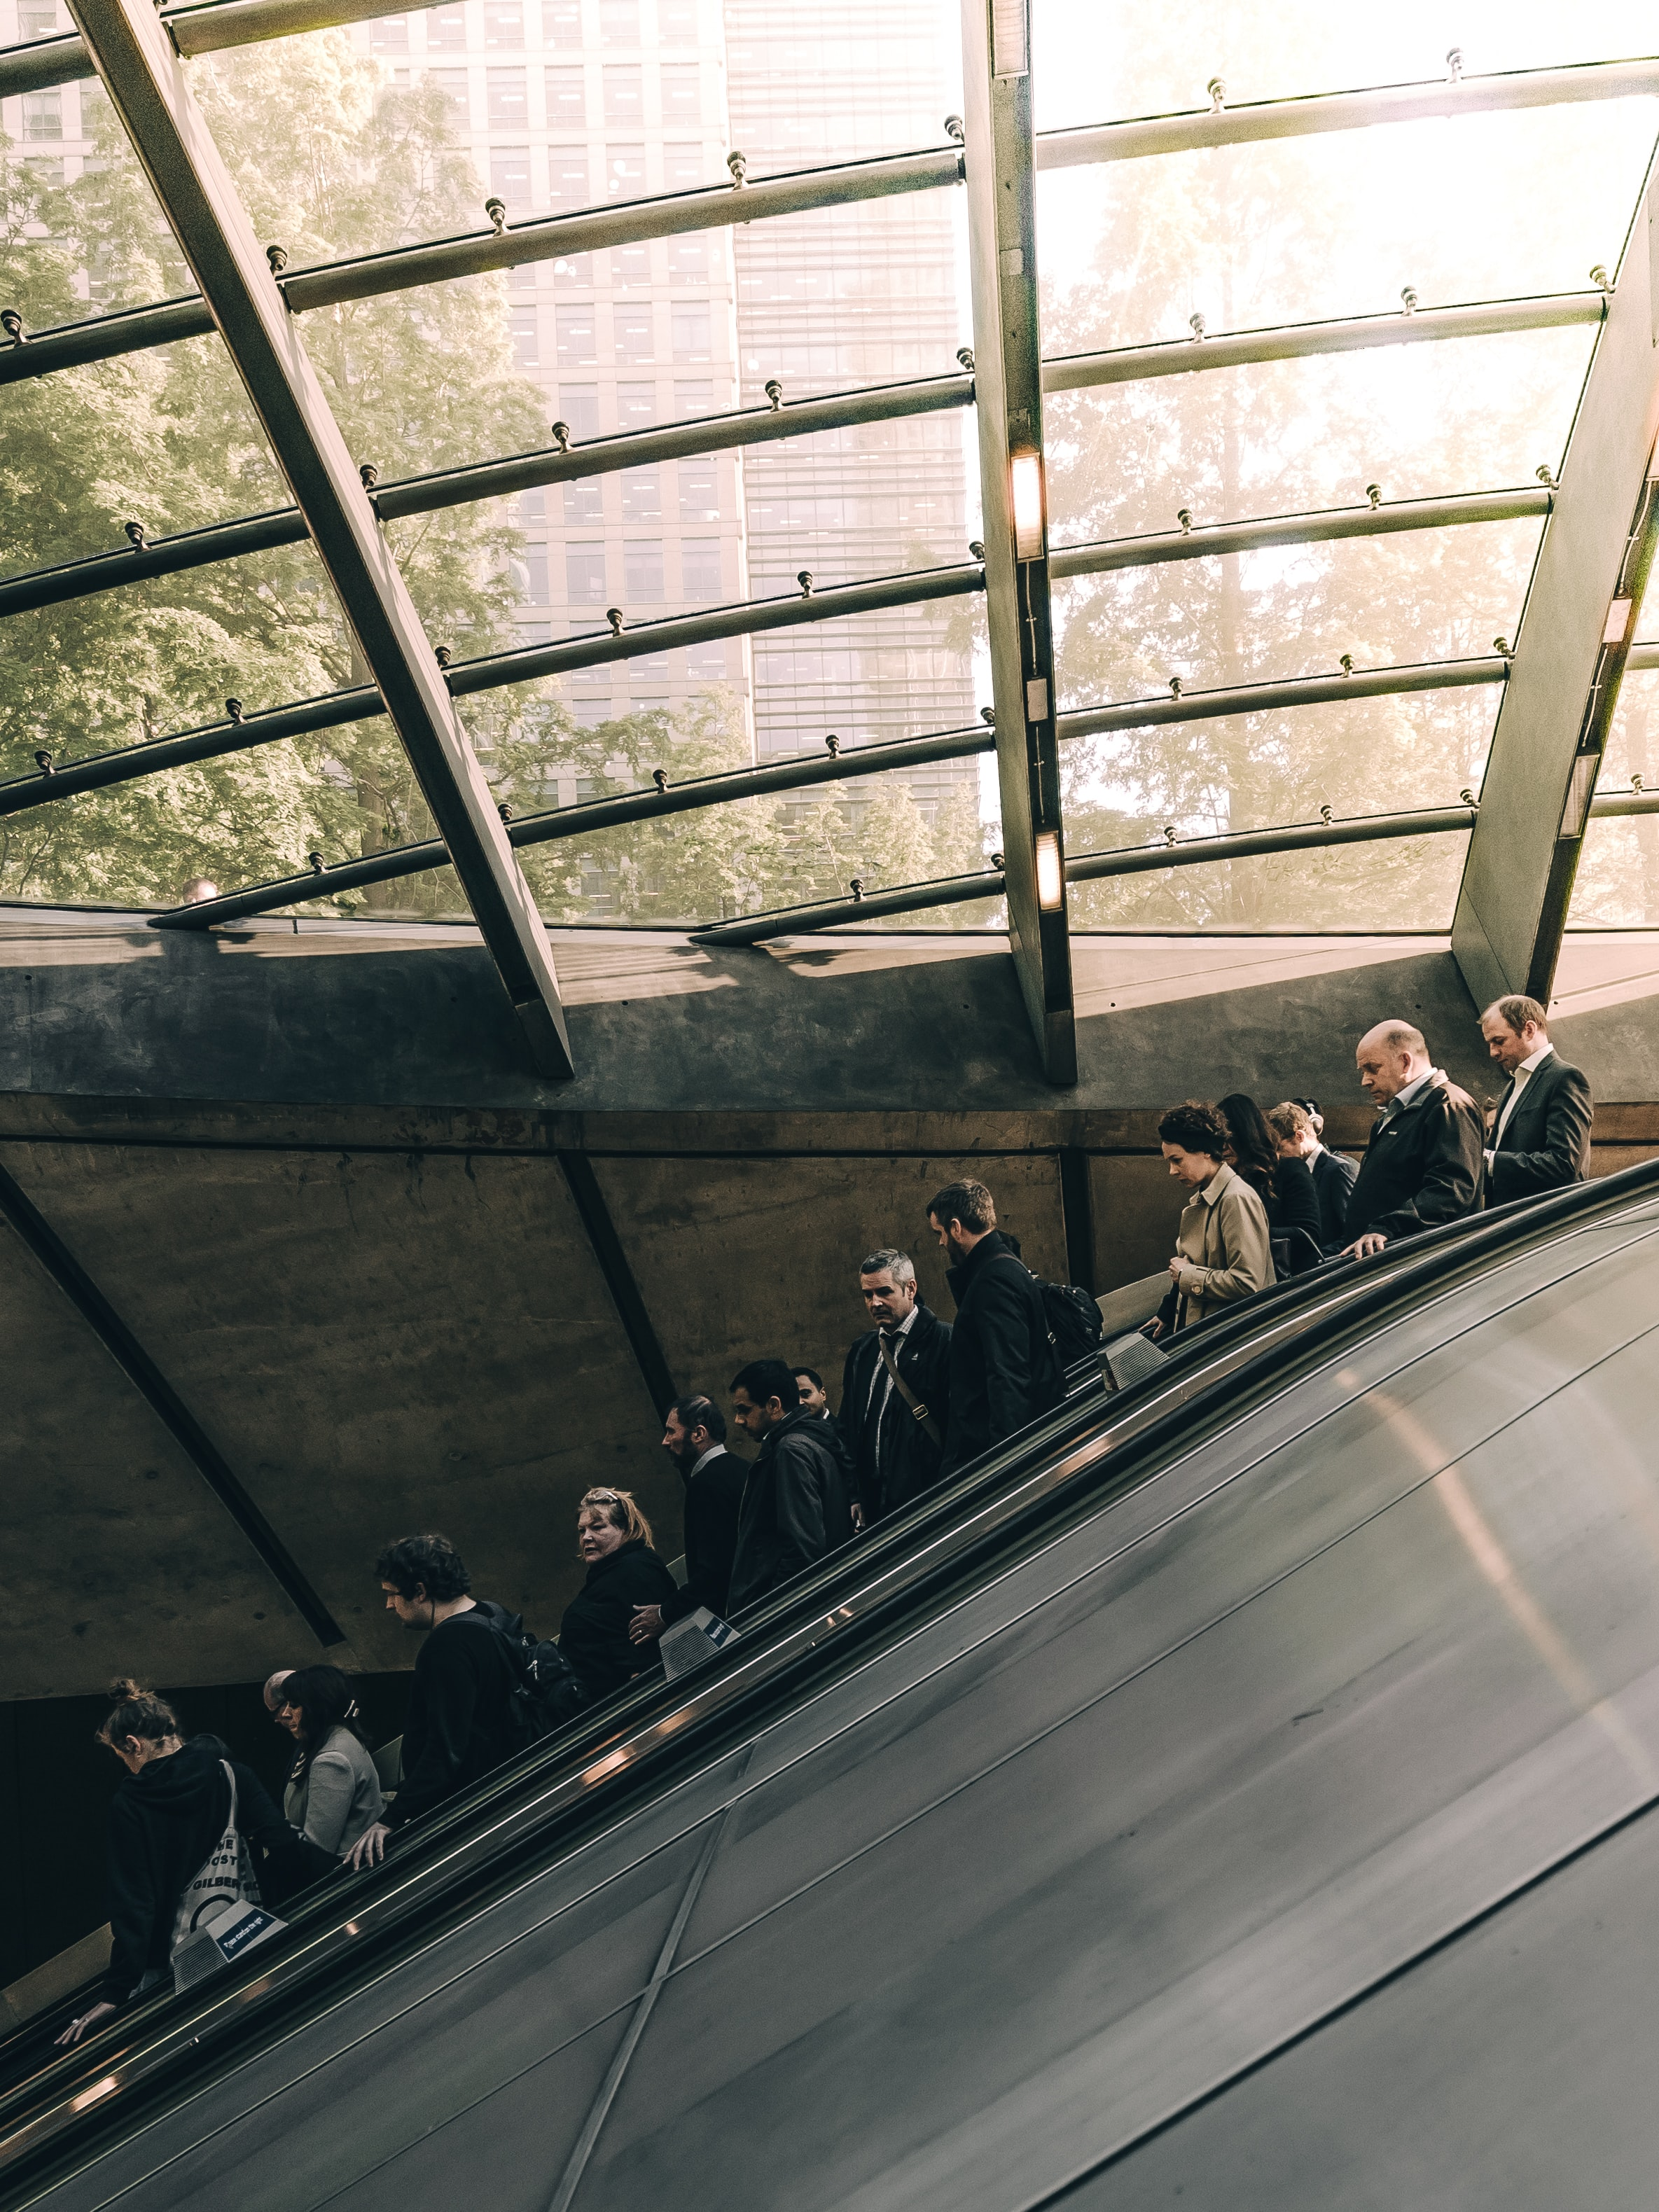 A line of people in business attire on an escalator in Canary Wharf